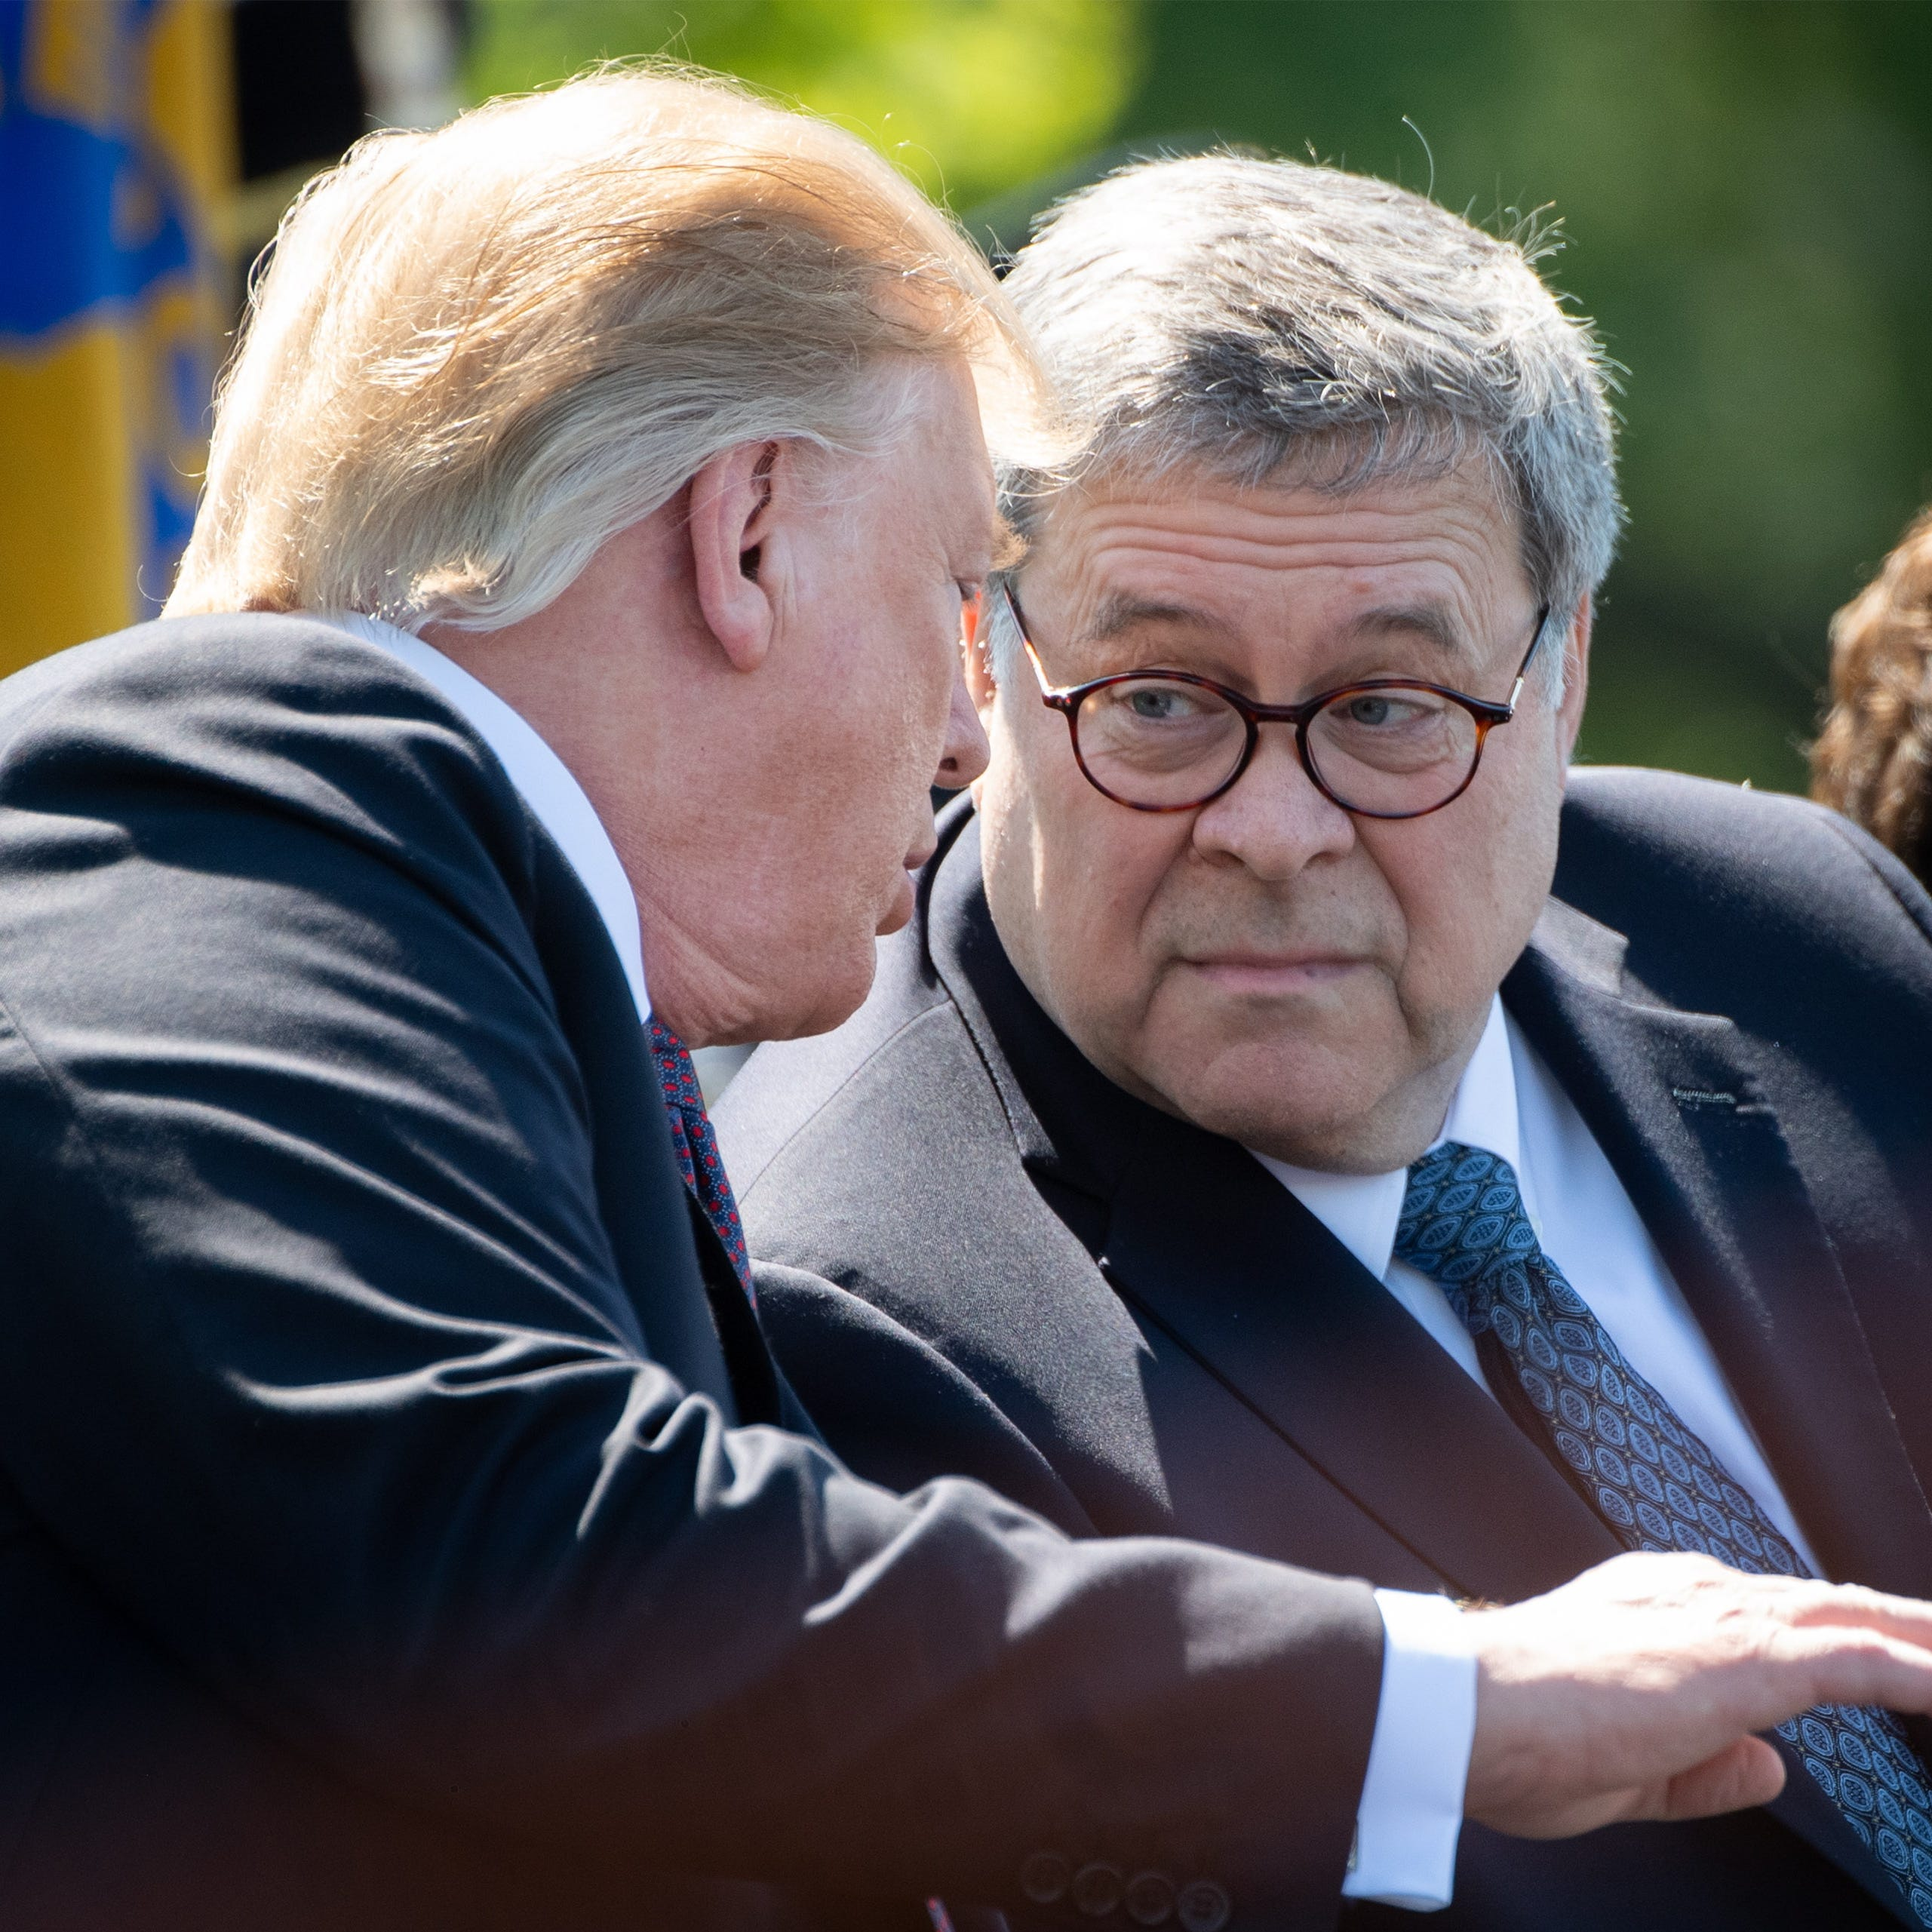 Trump-whispering 101: Barr gives him 3rd Mueller investigation probe for his 2020 campaign